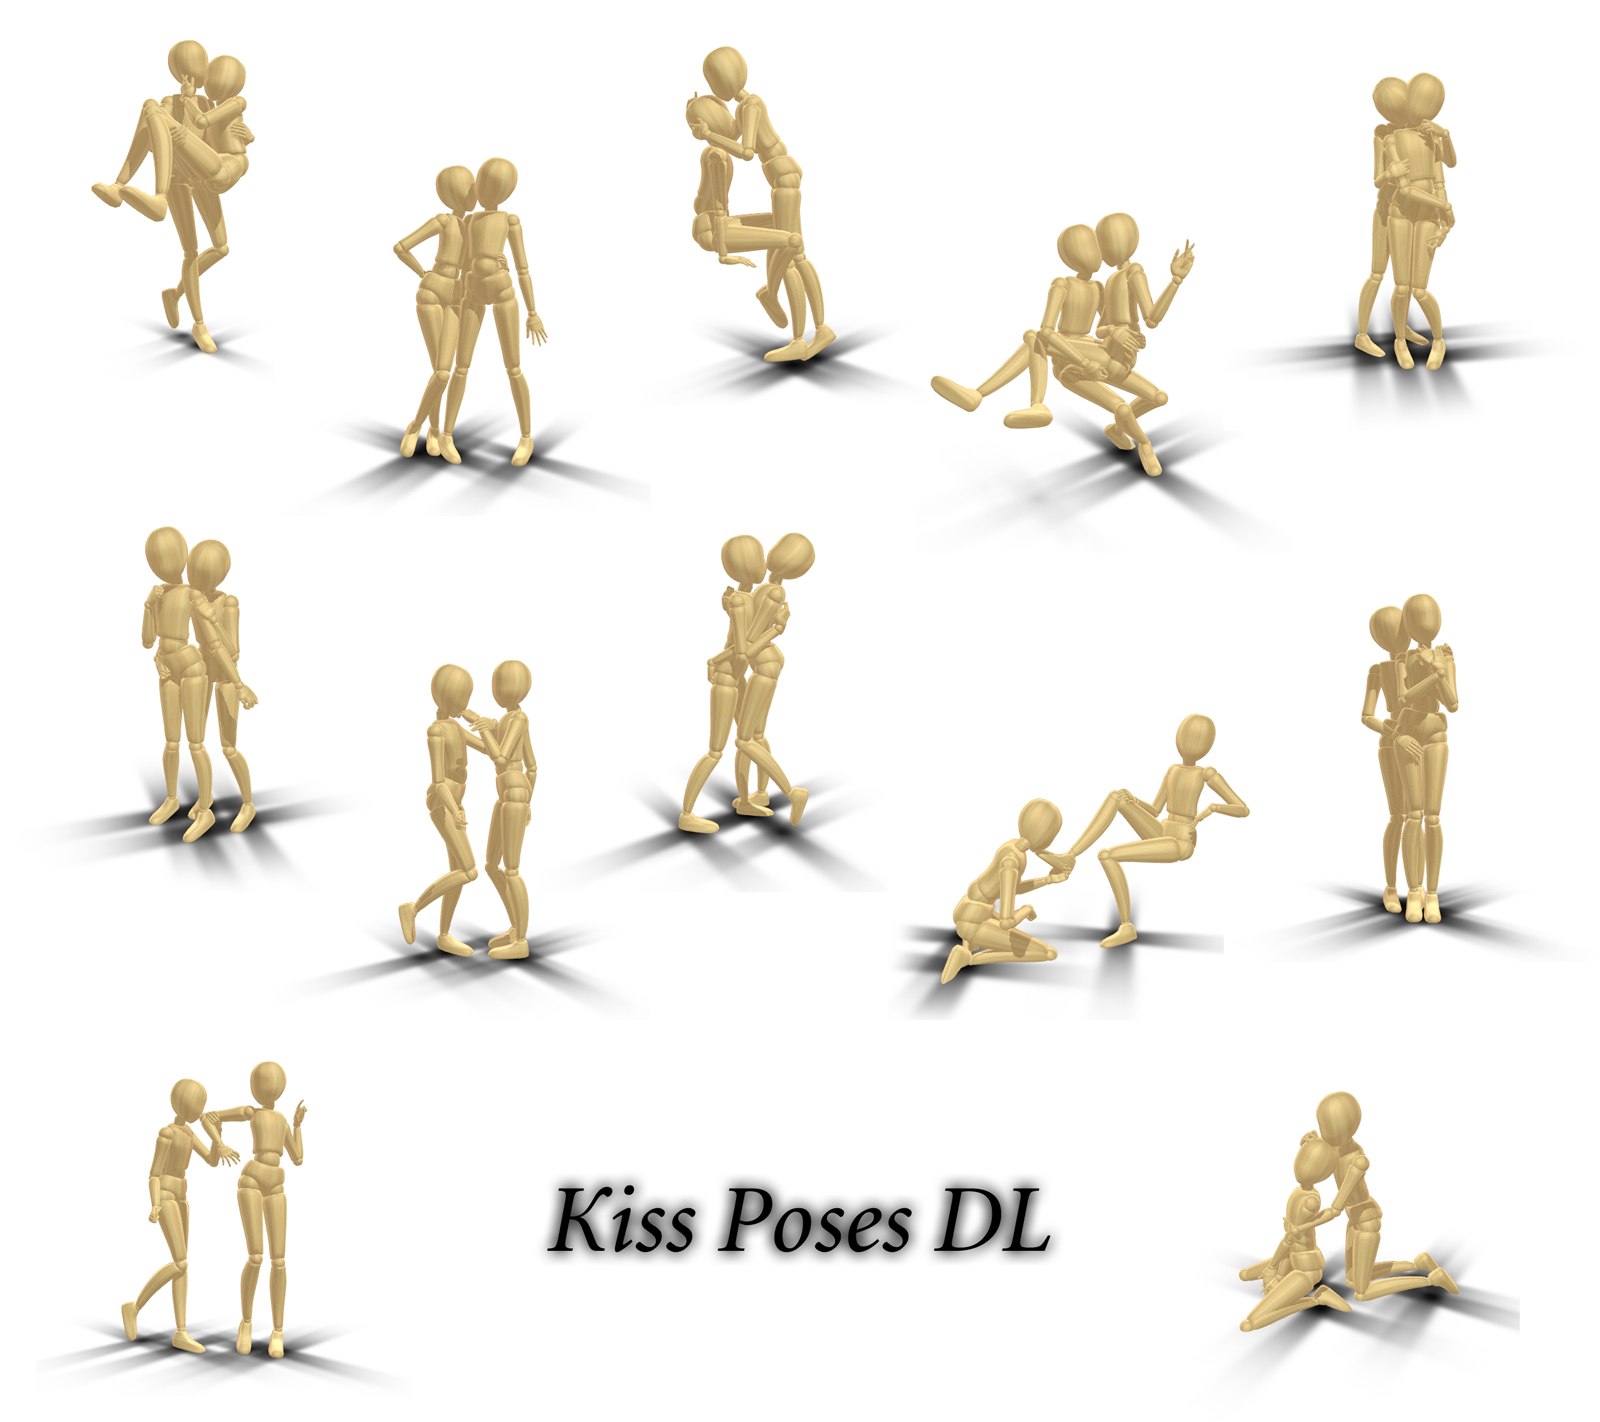 Kiss Poses DL by innaaleksui